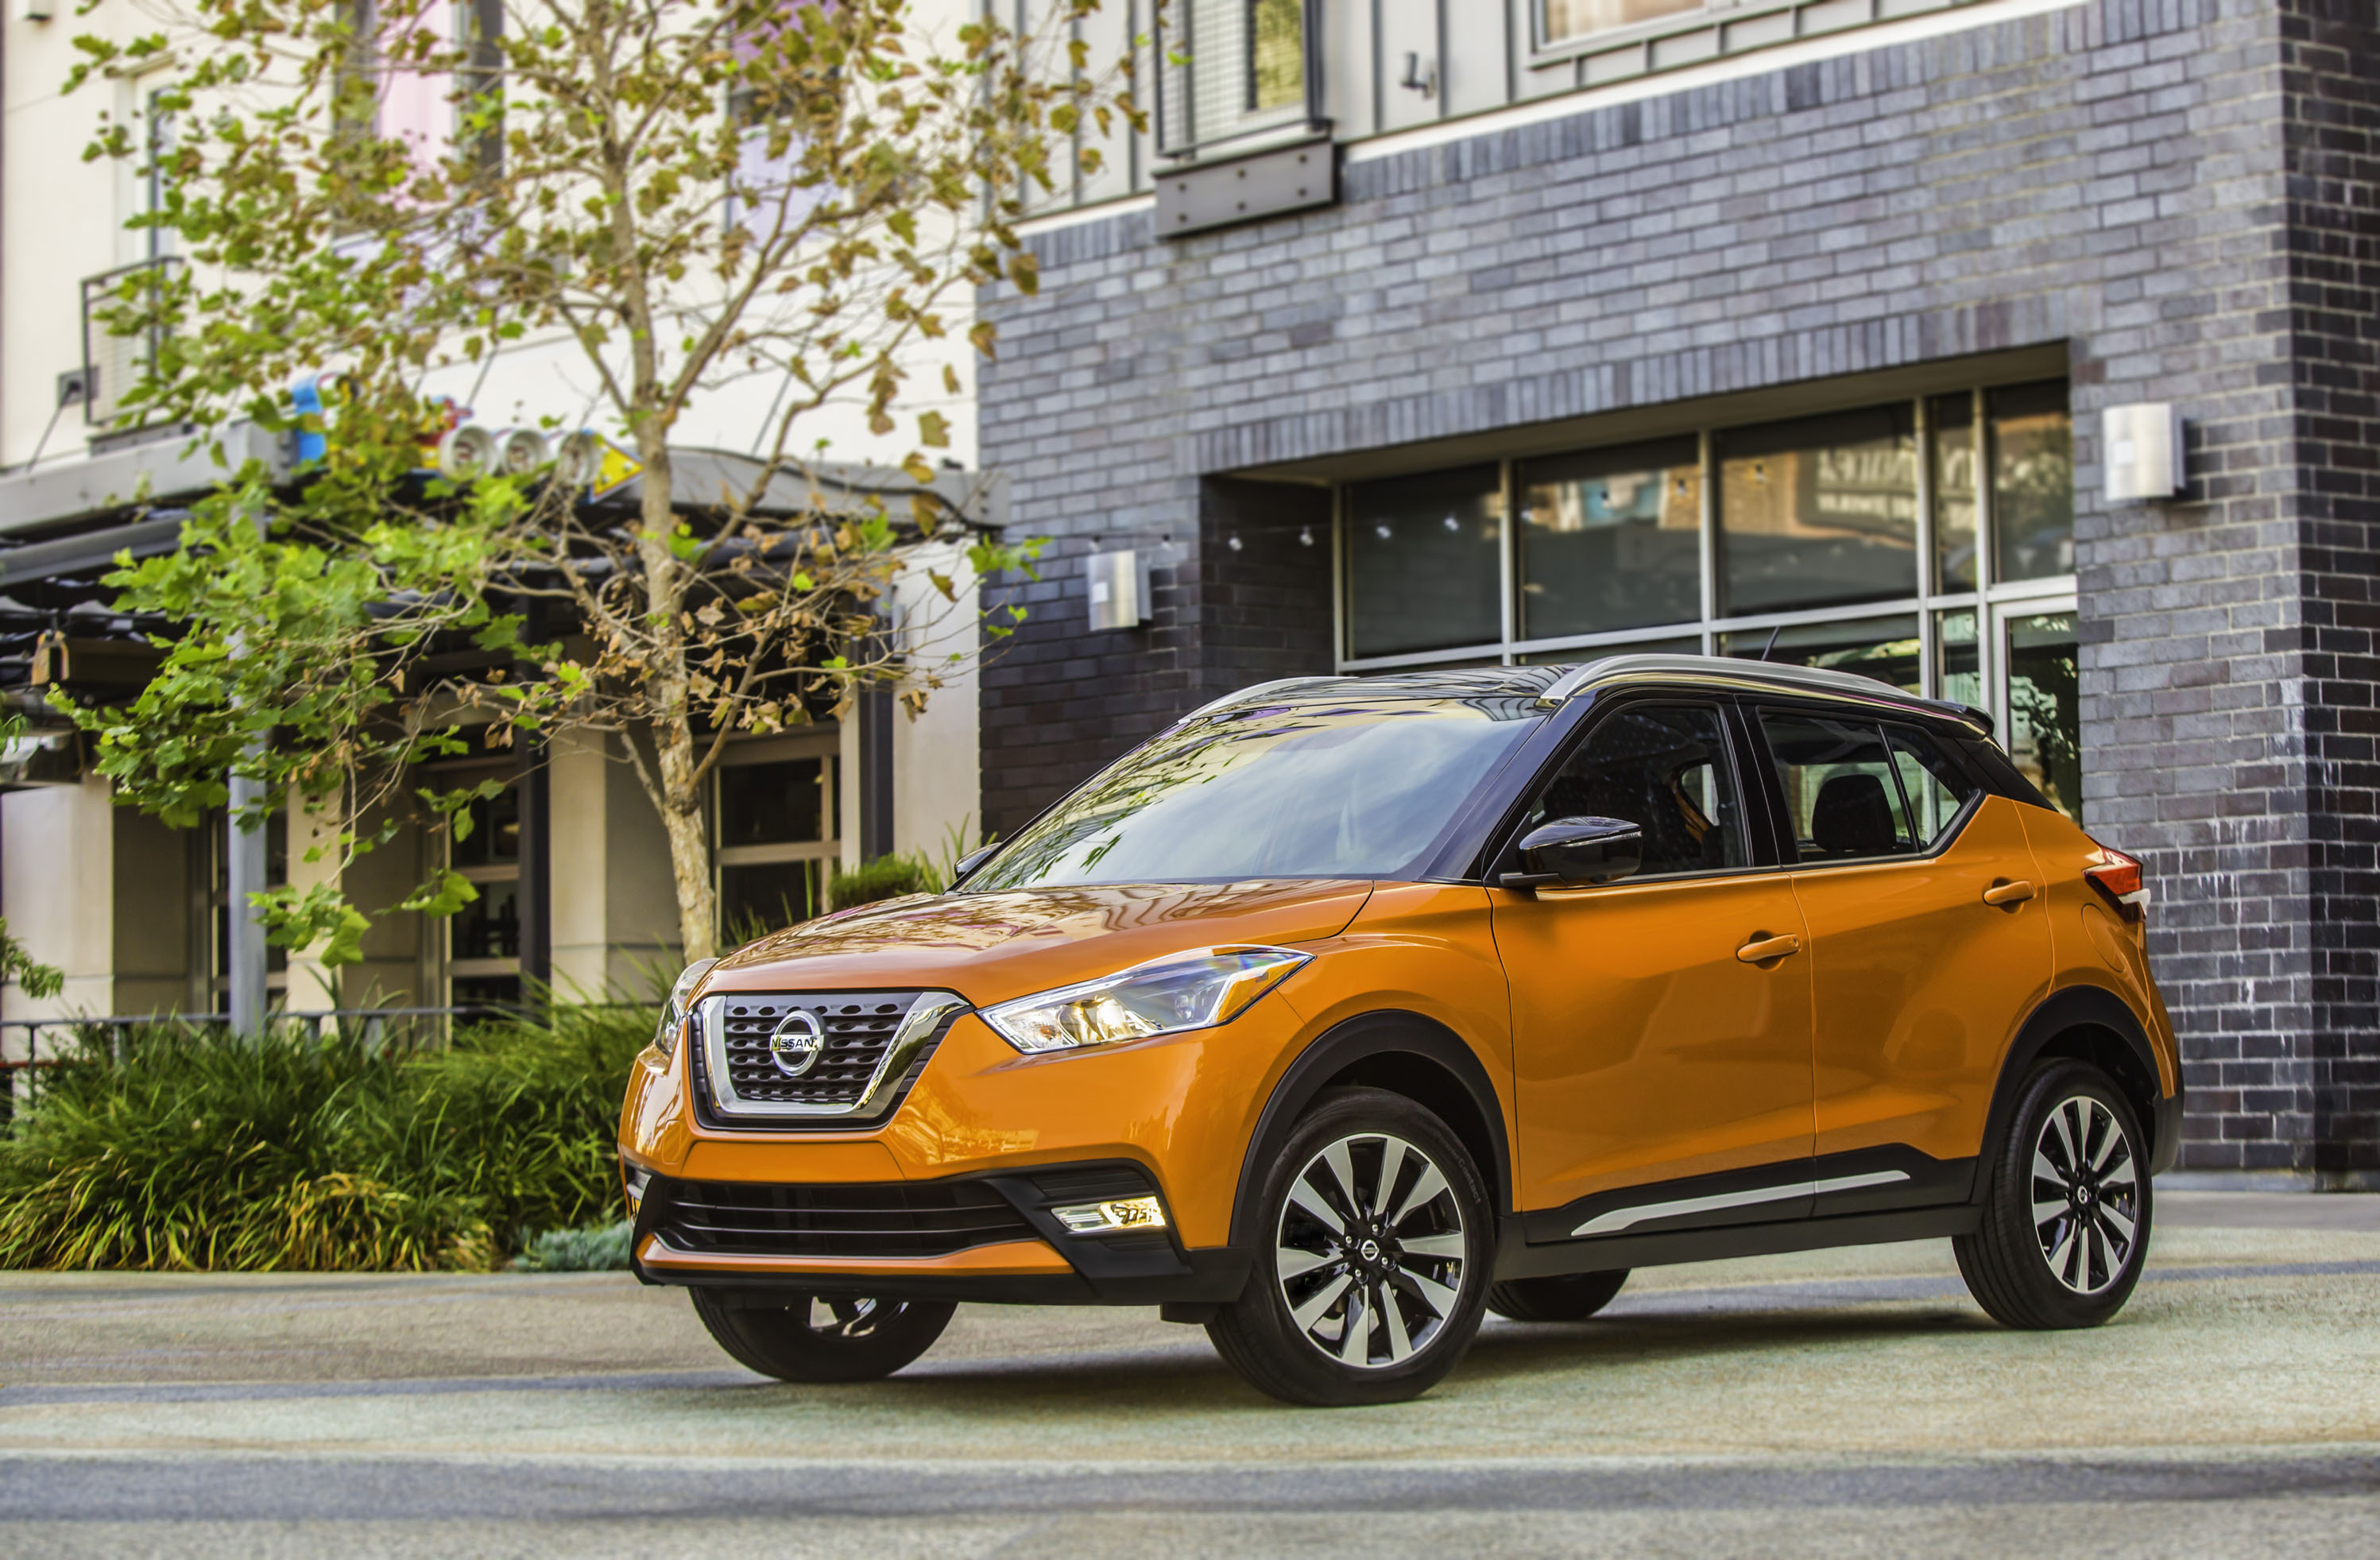 2019 Nissan Kicks Review, Ratings, Specs, Prices, and Photos